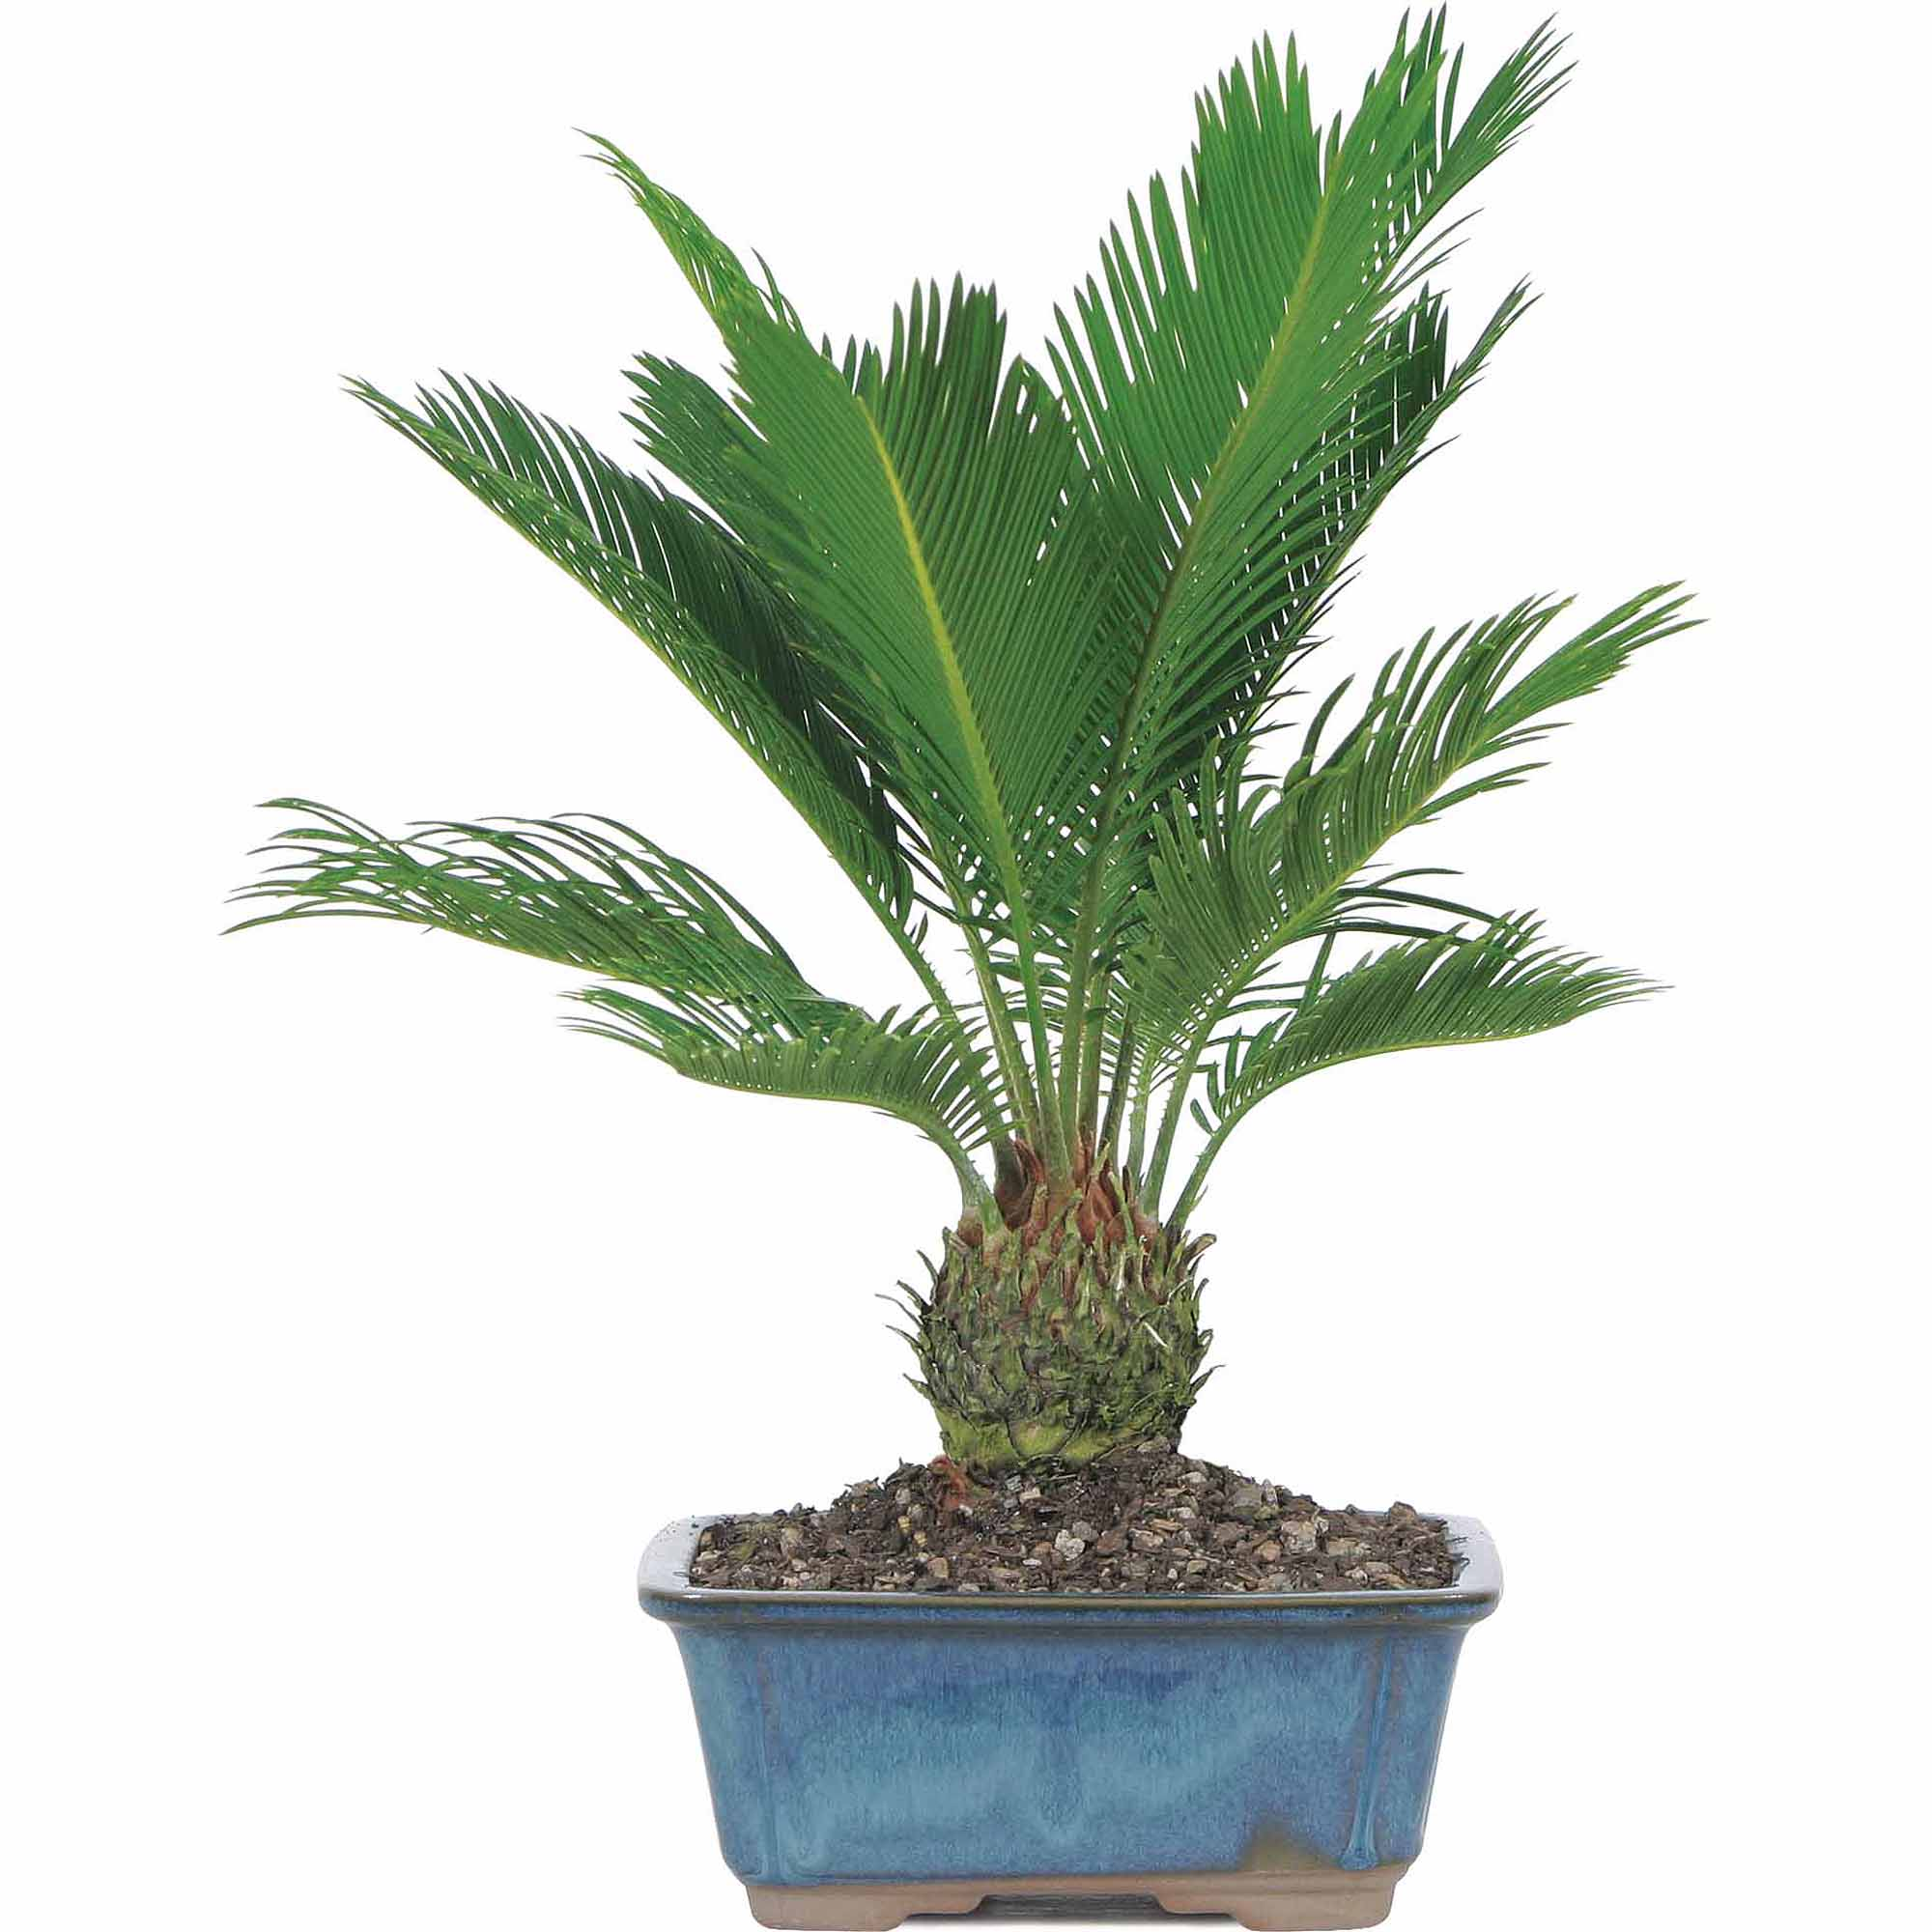 Sago Palm Bonsai Tree by Brussel's Bonsai